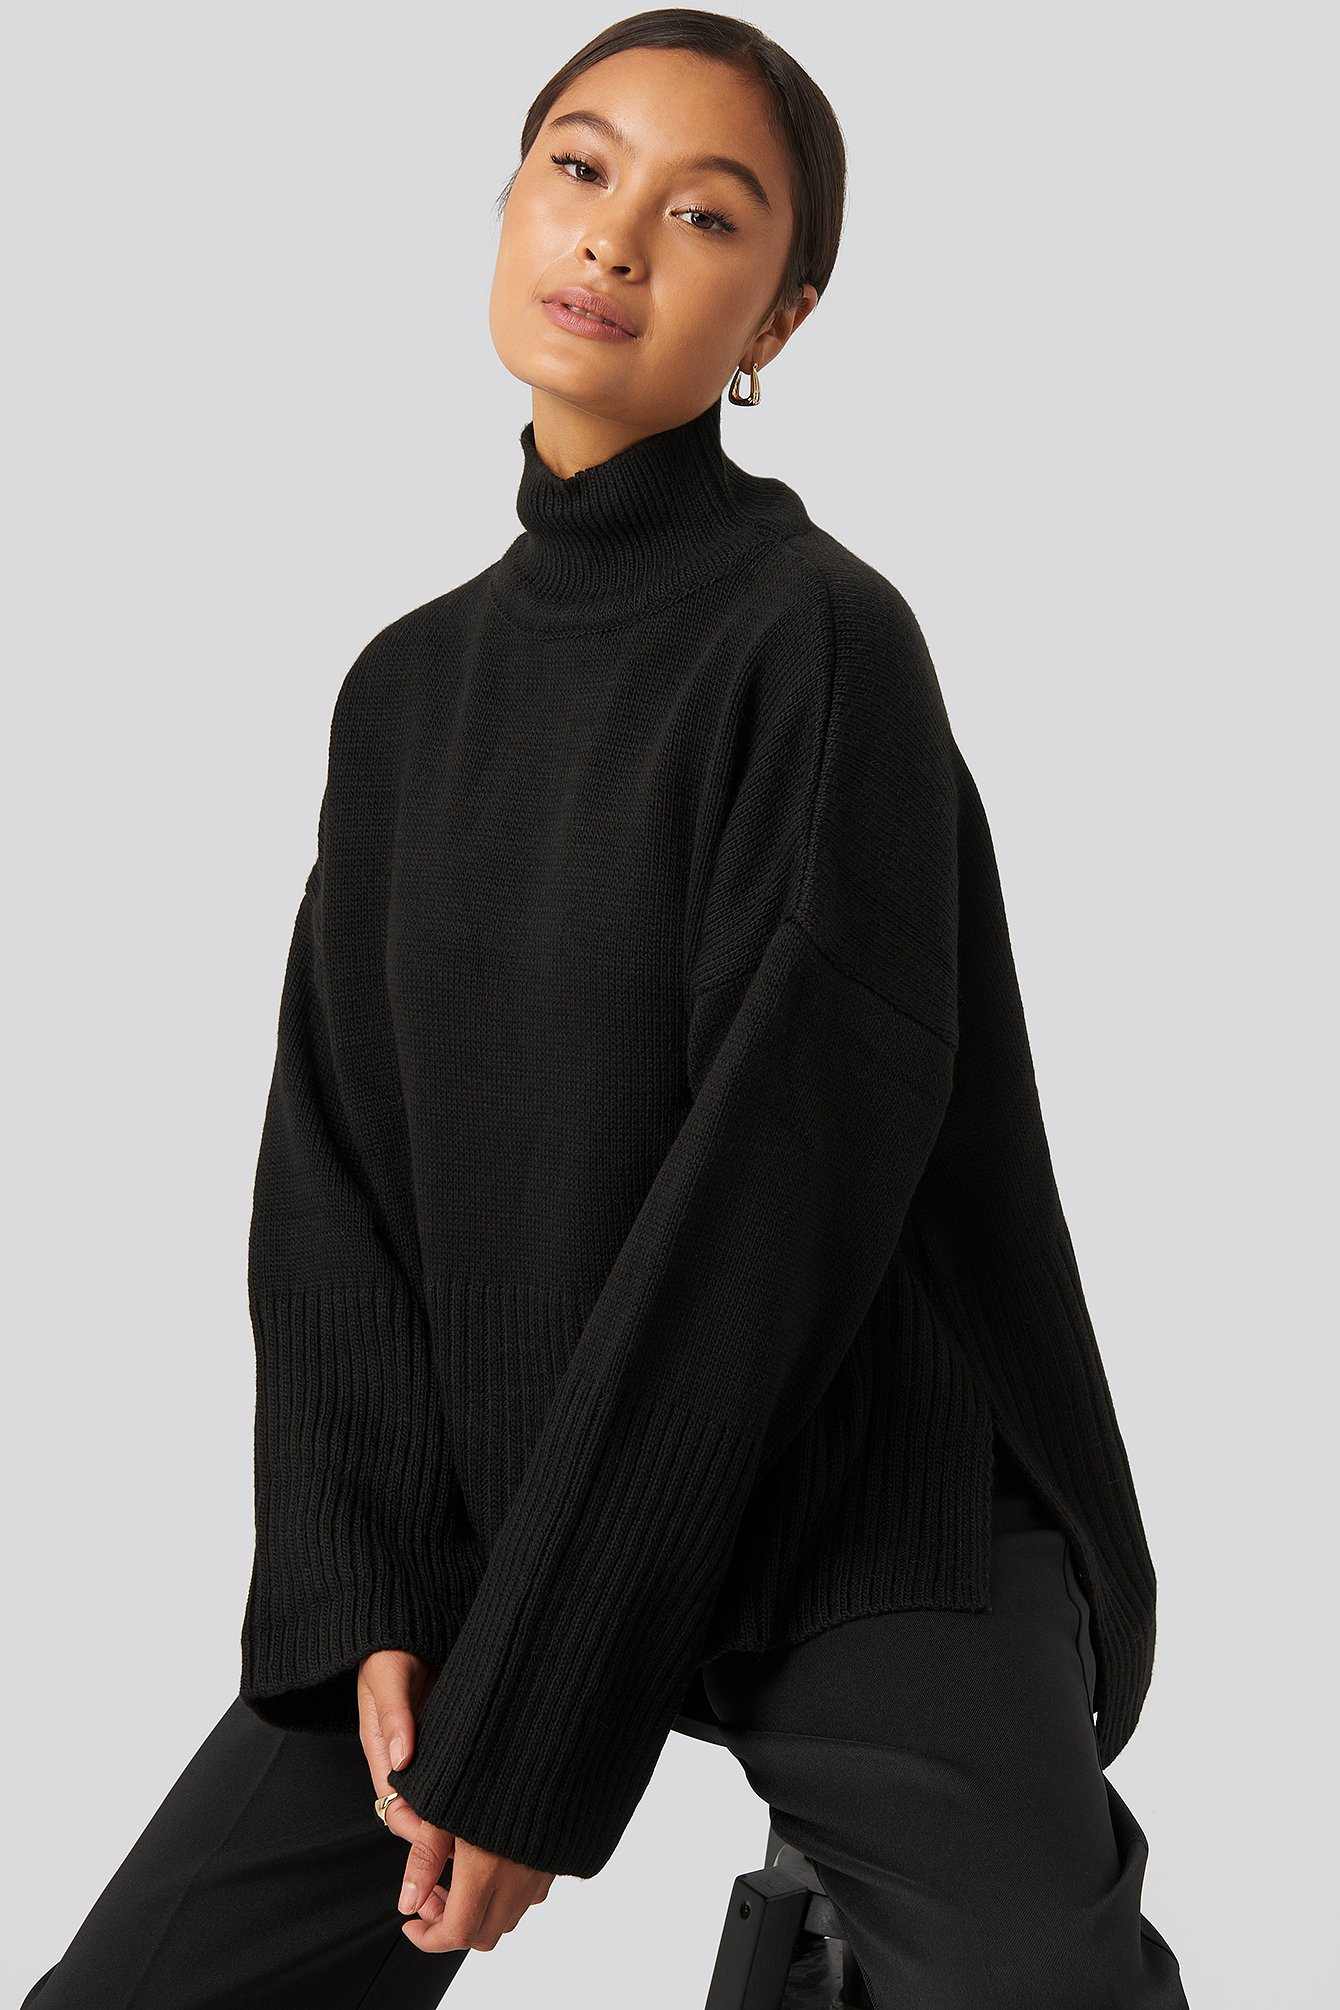 trendyol -  Vertical Neck Sweater - Black